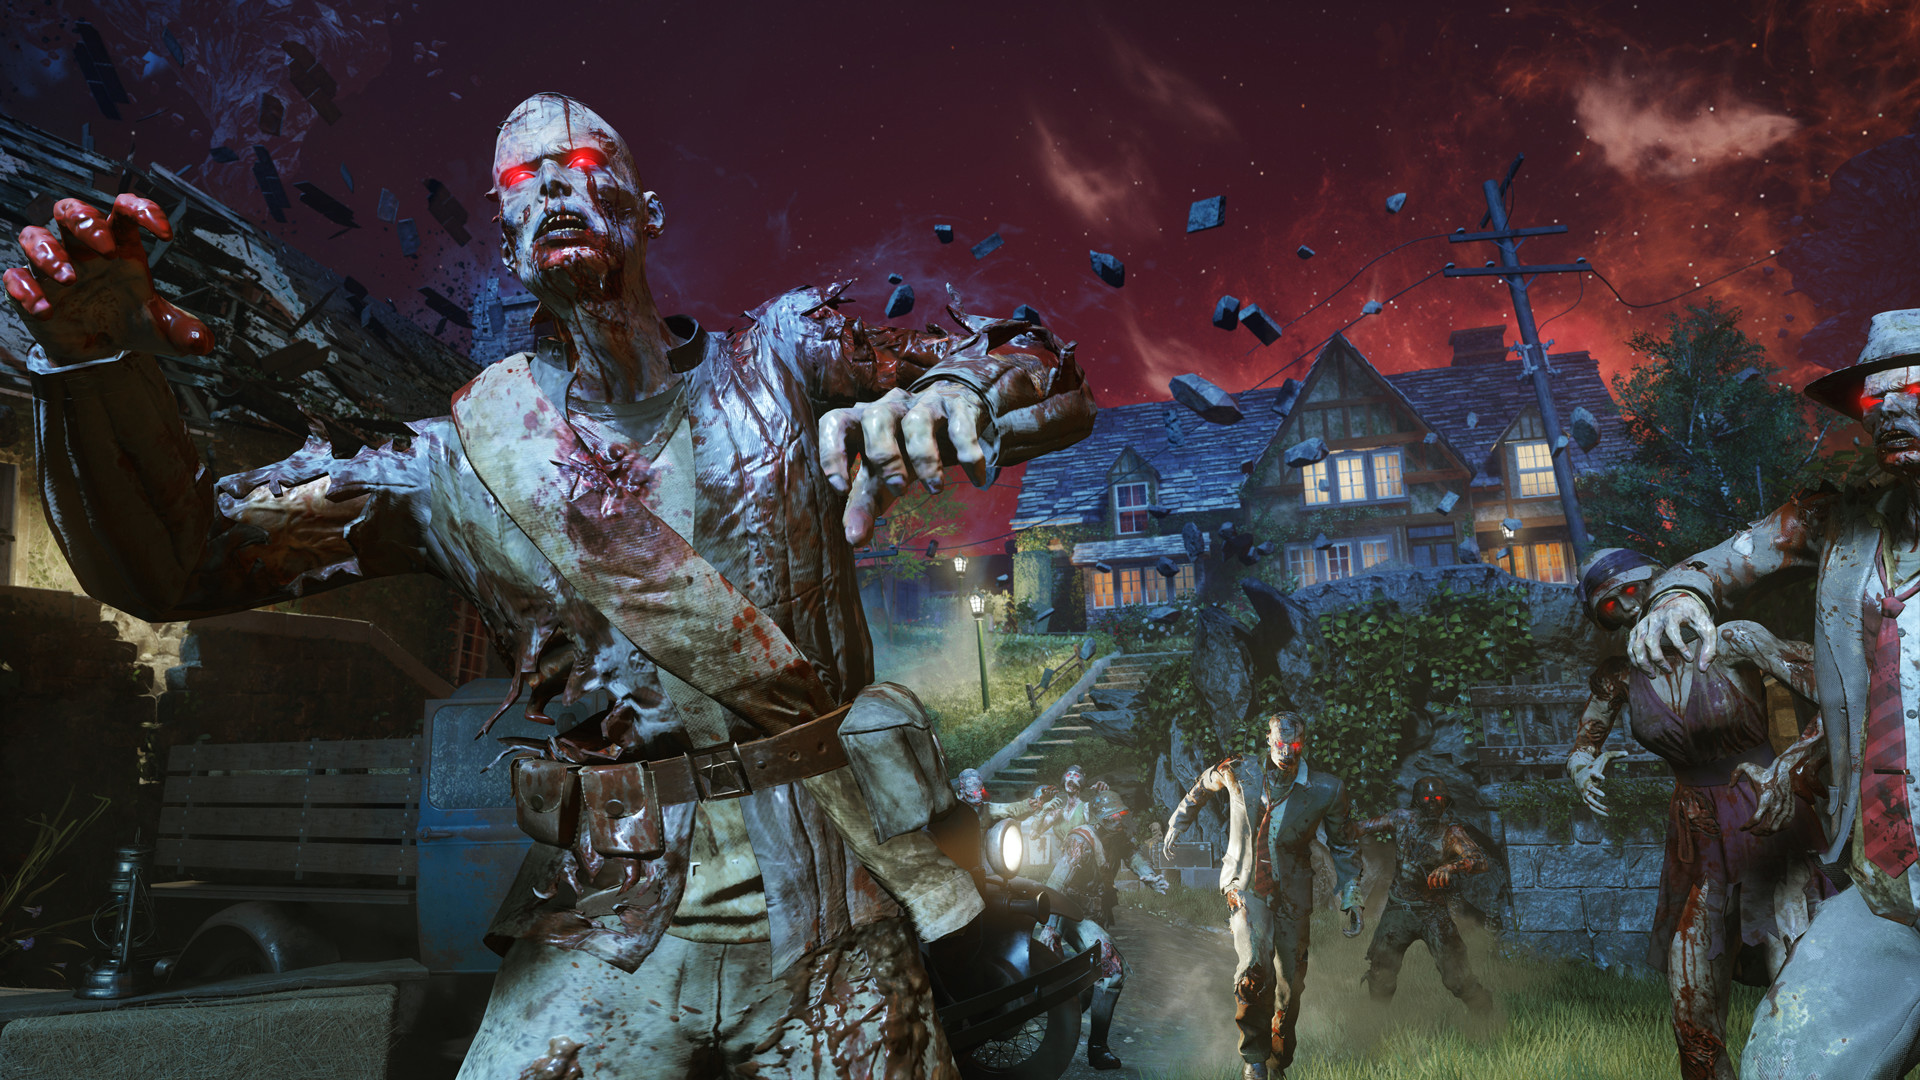 Call of Duty: Black Ops III - Revelations Zombies Map (2018